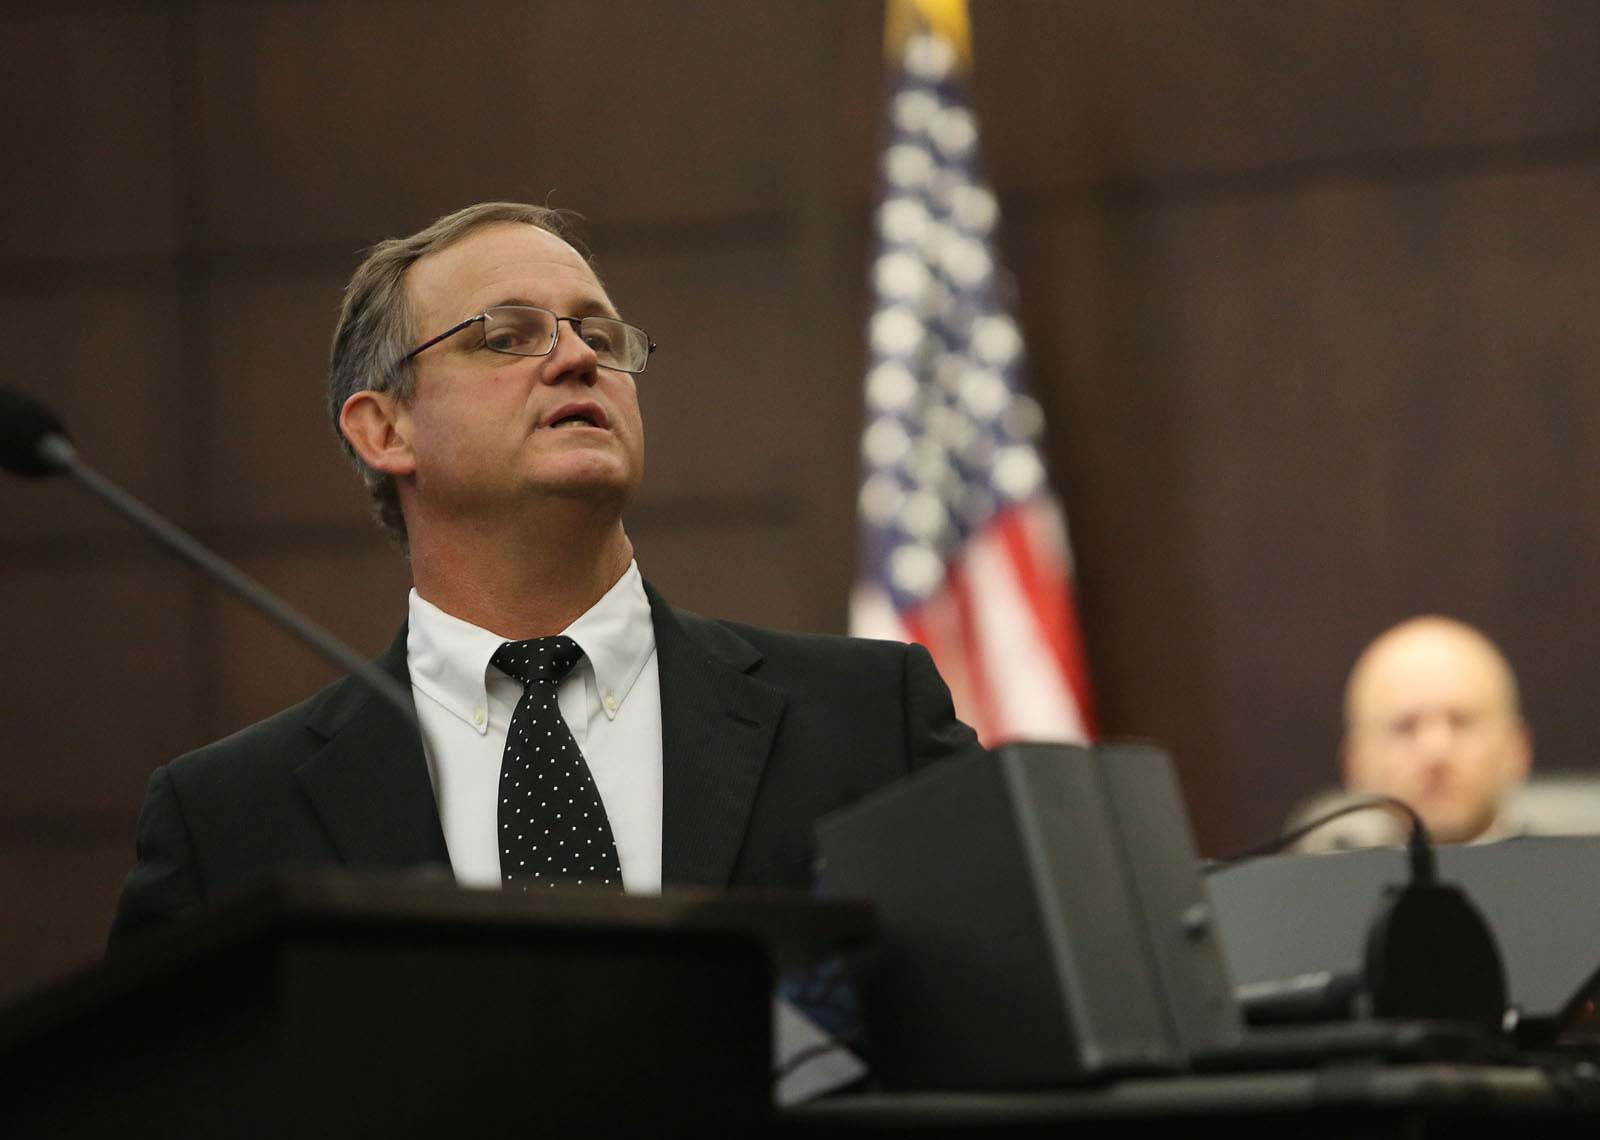 Lead defense attorney Michael Ruppert gives his closing statements during Pedro Bravo's murder trial in courtroom 1B of the Alachua County Criminal Justice Center Friday, August 15, 2014.  Bravo is accused of killing University of Florida student Christian Aguilar.  (Doug Finger/The Gainesville Sun/Pool)